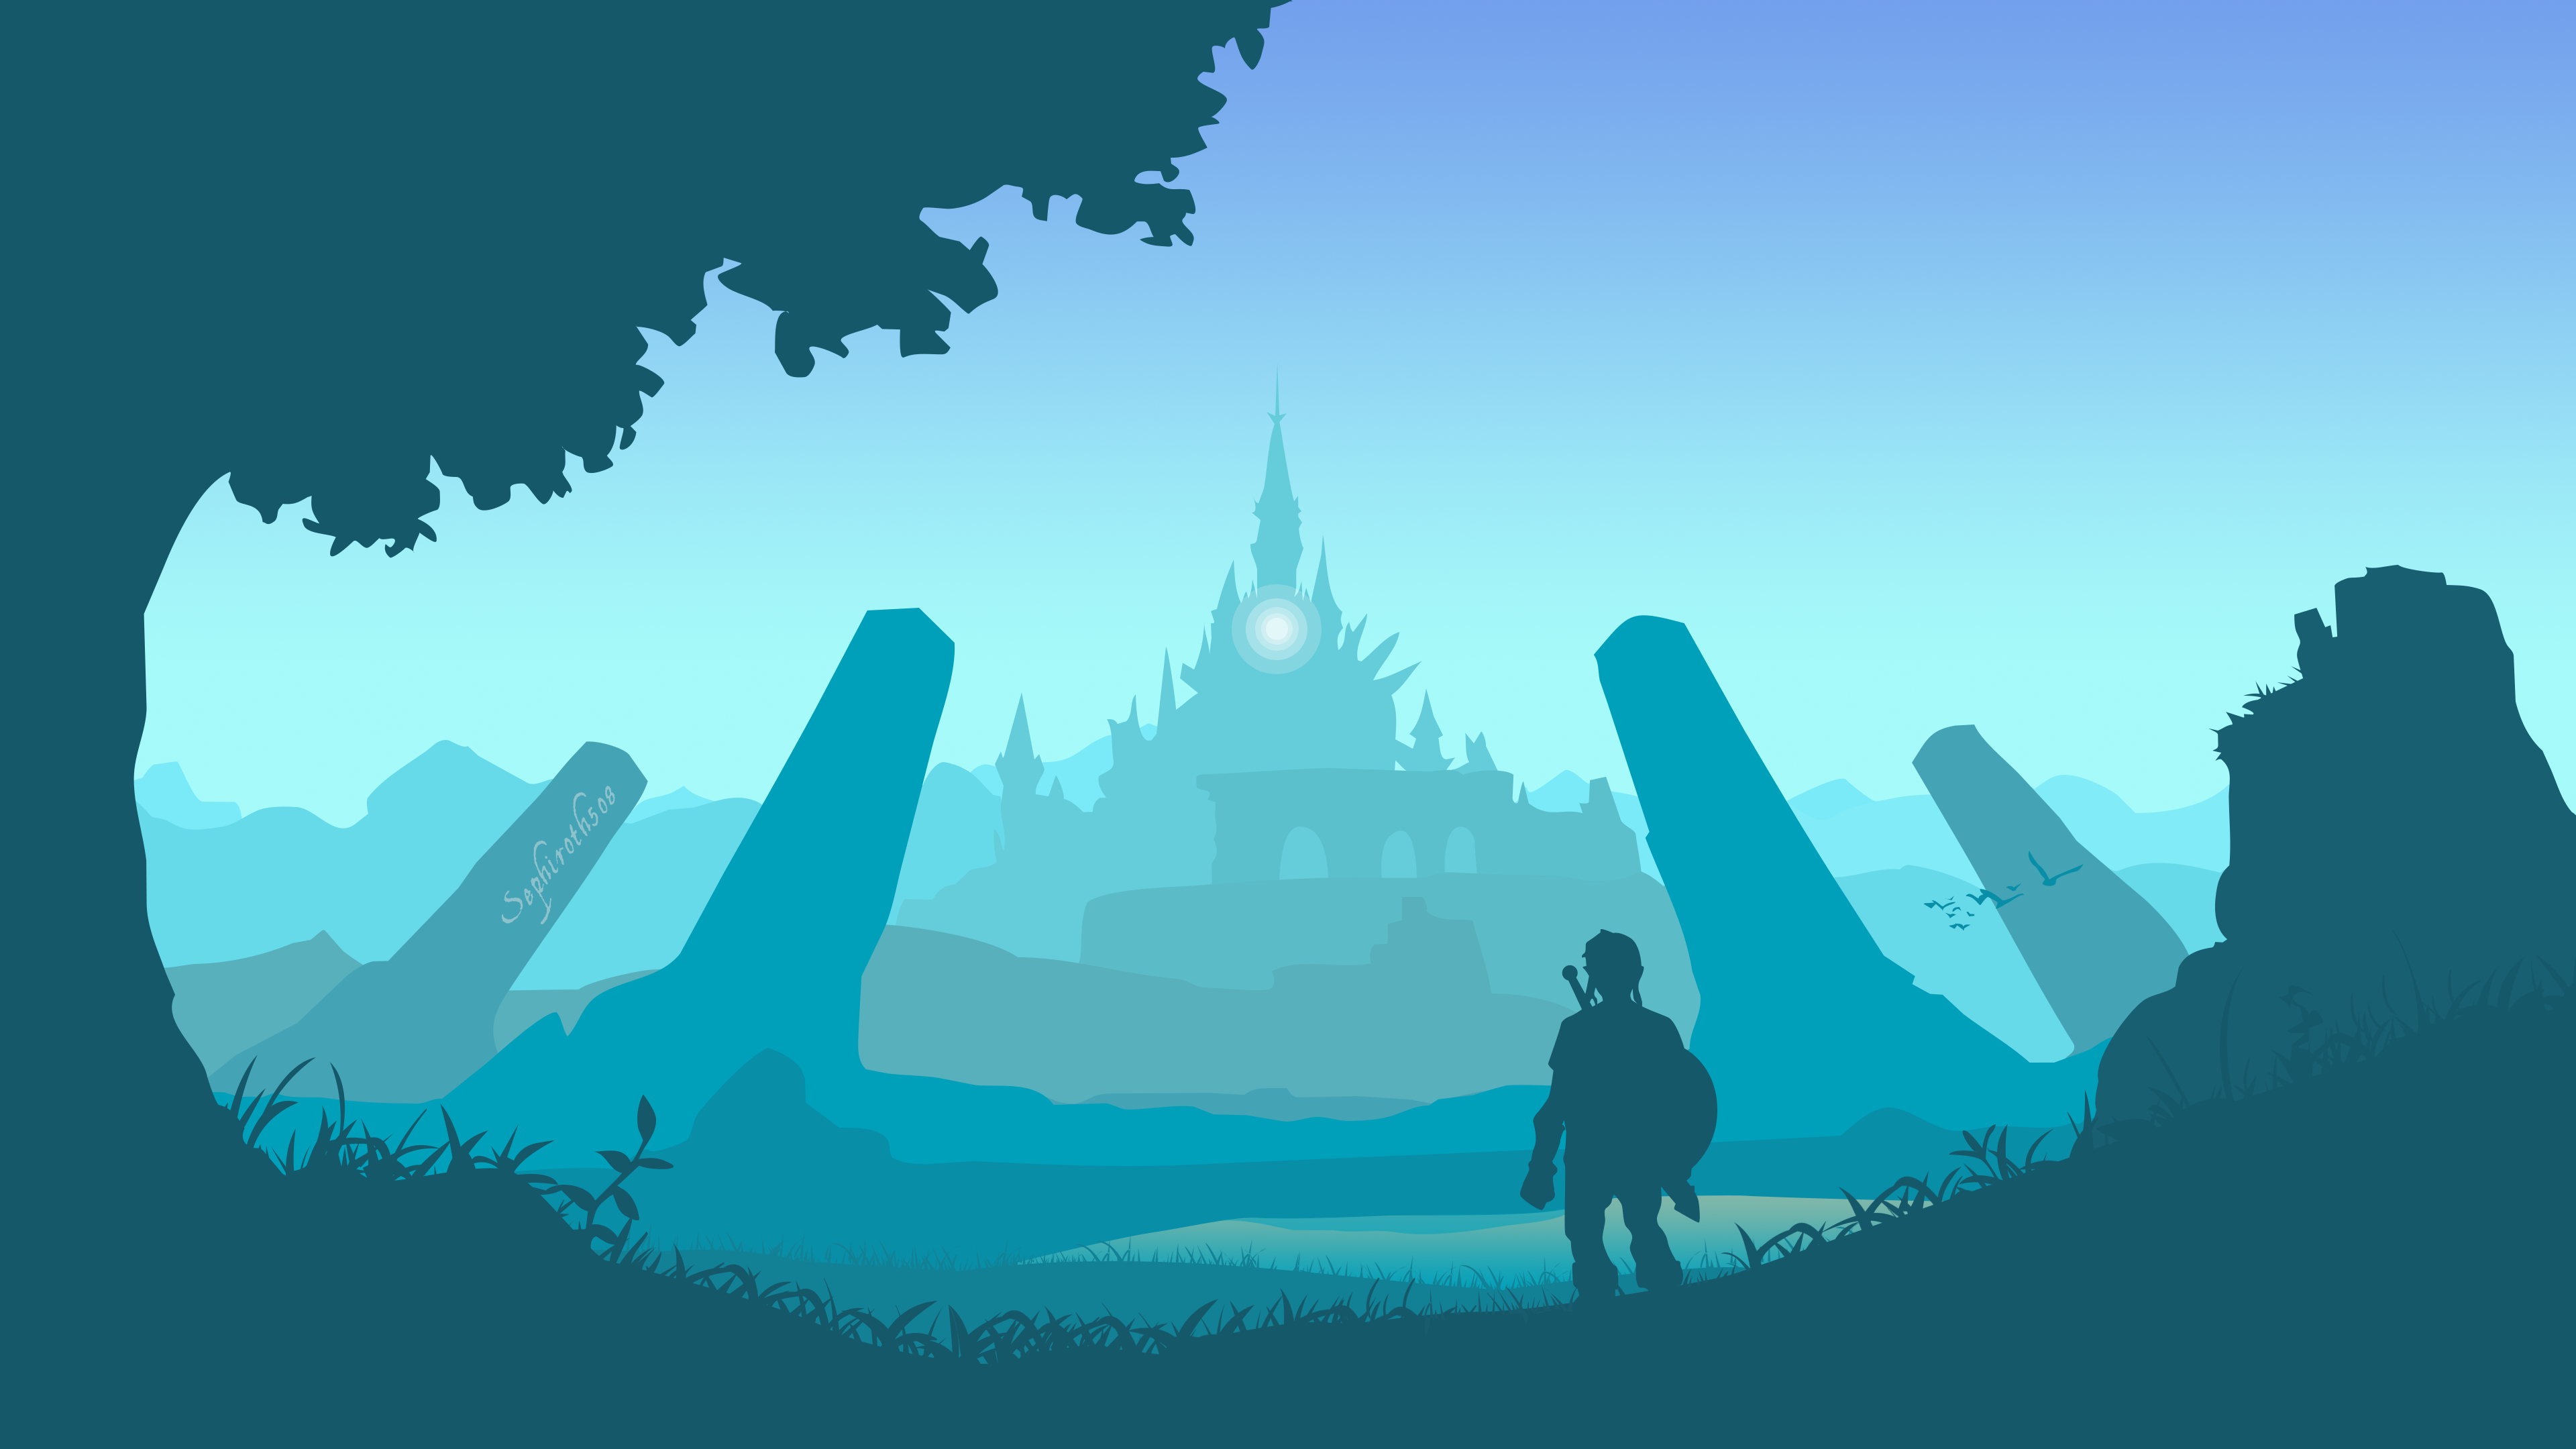 Made A Botw Vector Wallpaper 4k Art Wallpaper Legend Of Zelda Legend Of Zelda Breath